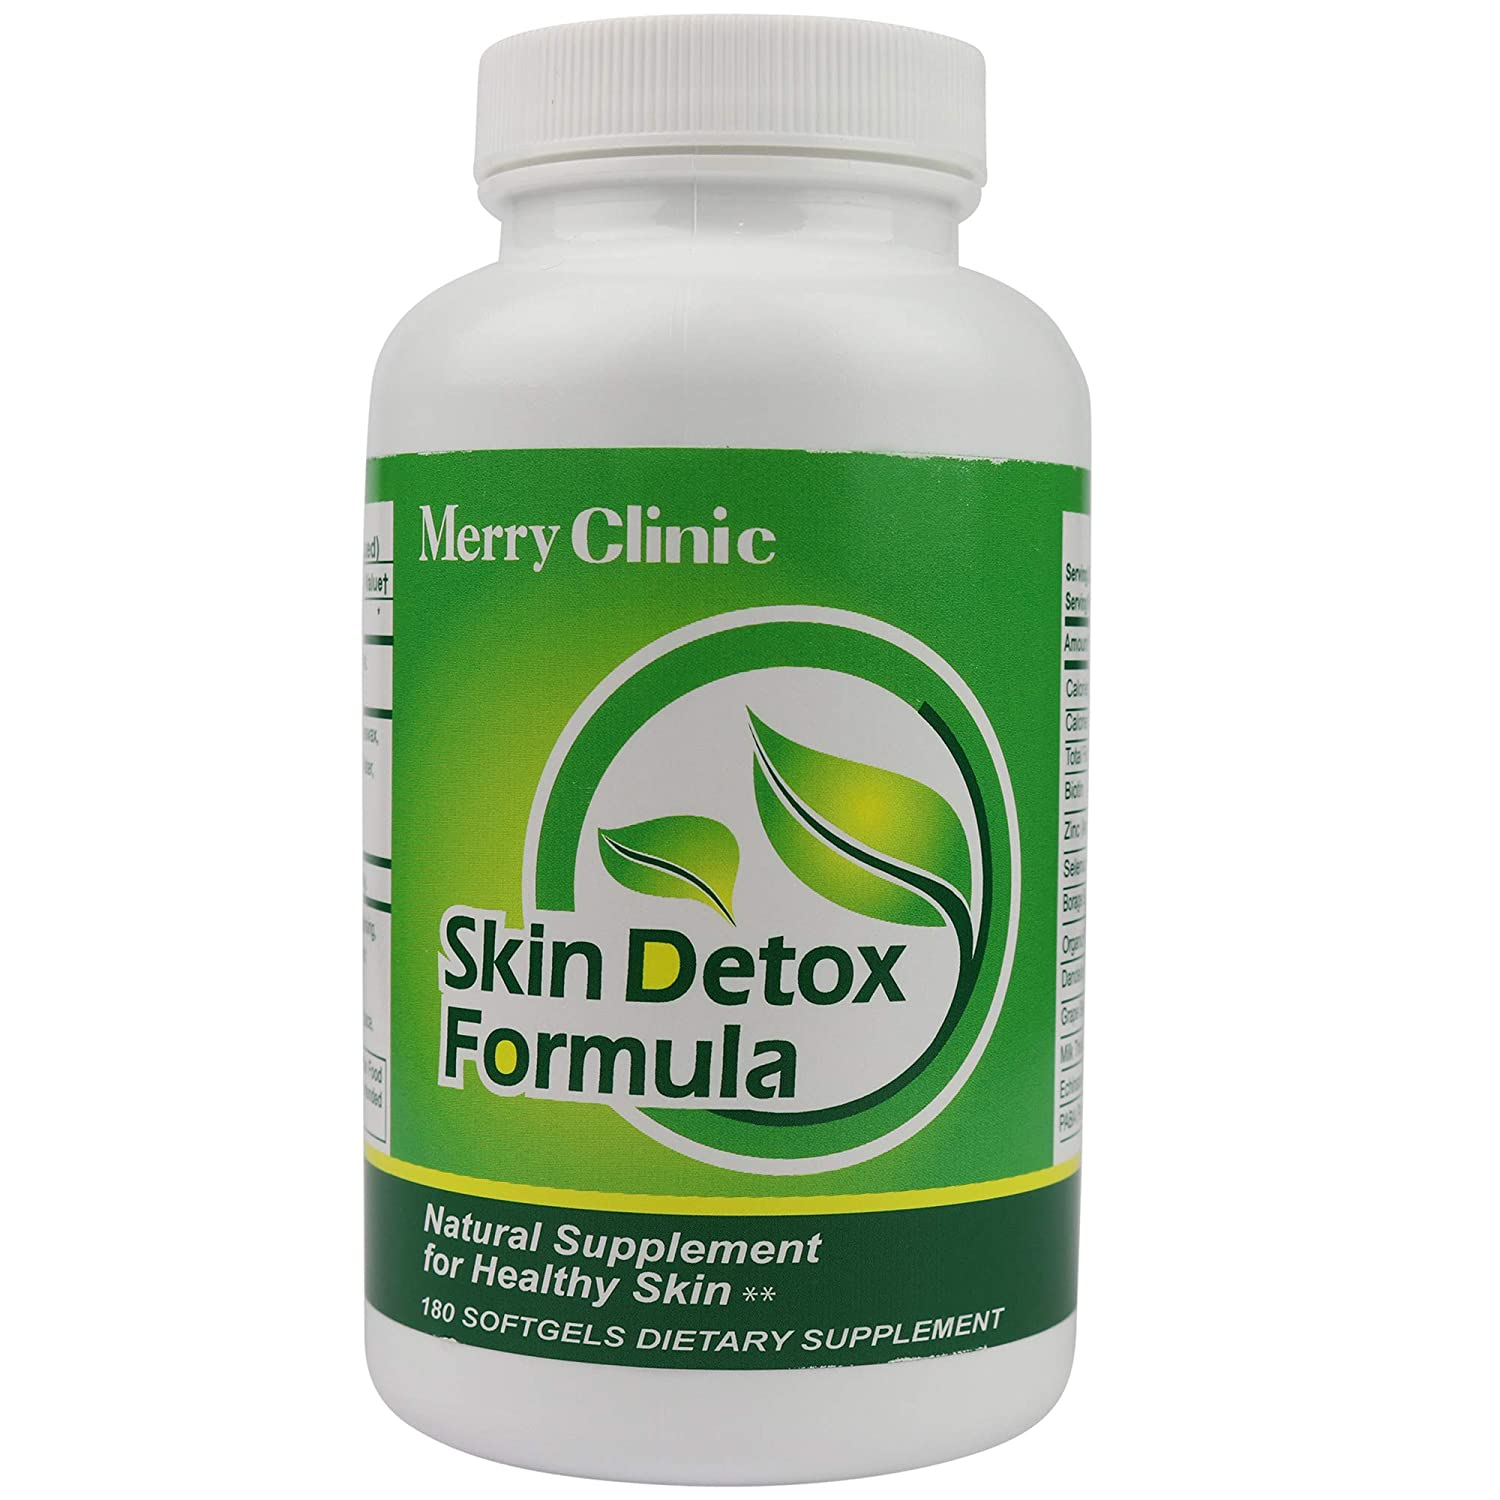 Skin Detox Formula by Merry Clinic – Detox Pills Dietary Supplements for Better Skin – Botanical Clear Skin Vitamins